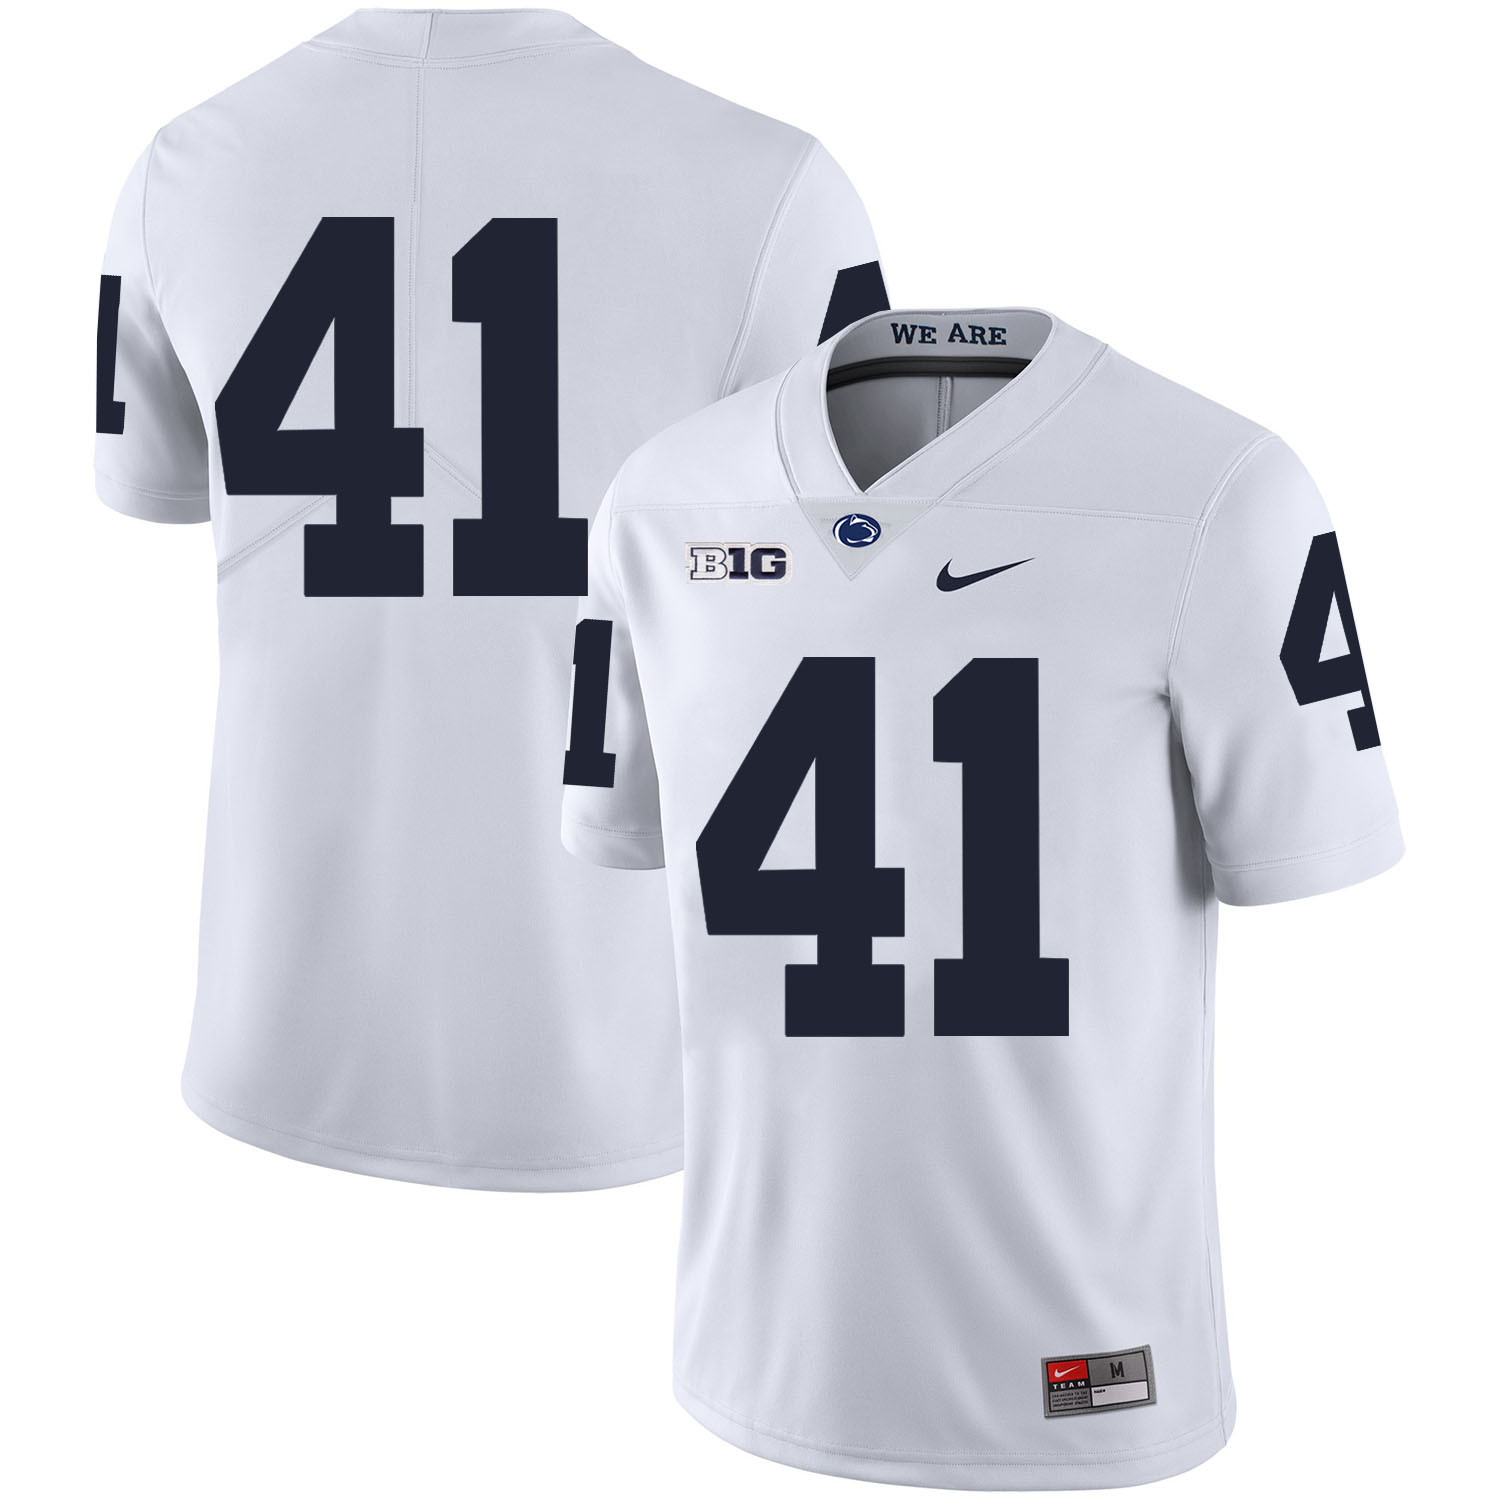 Penn State Nittany Lions 41 Parker Cothren White Nike College Football Jersey